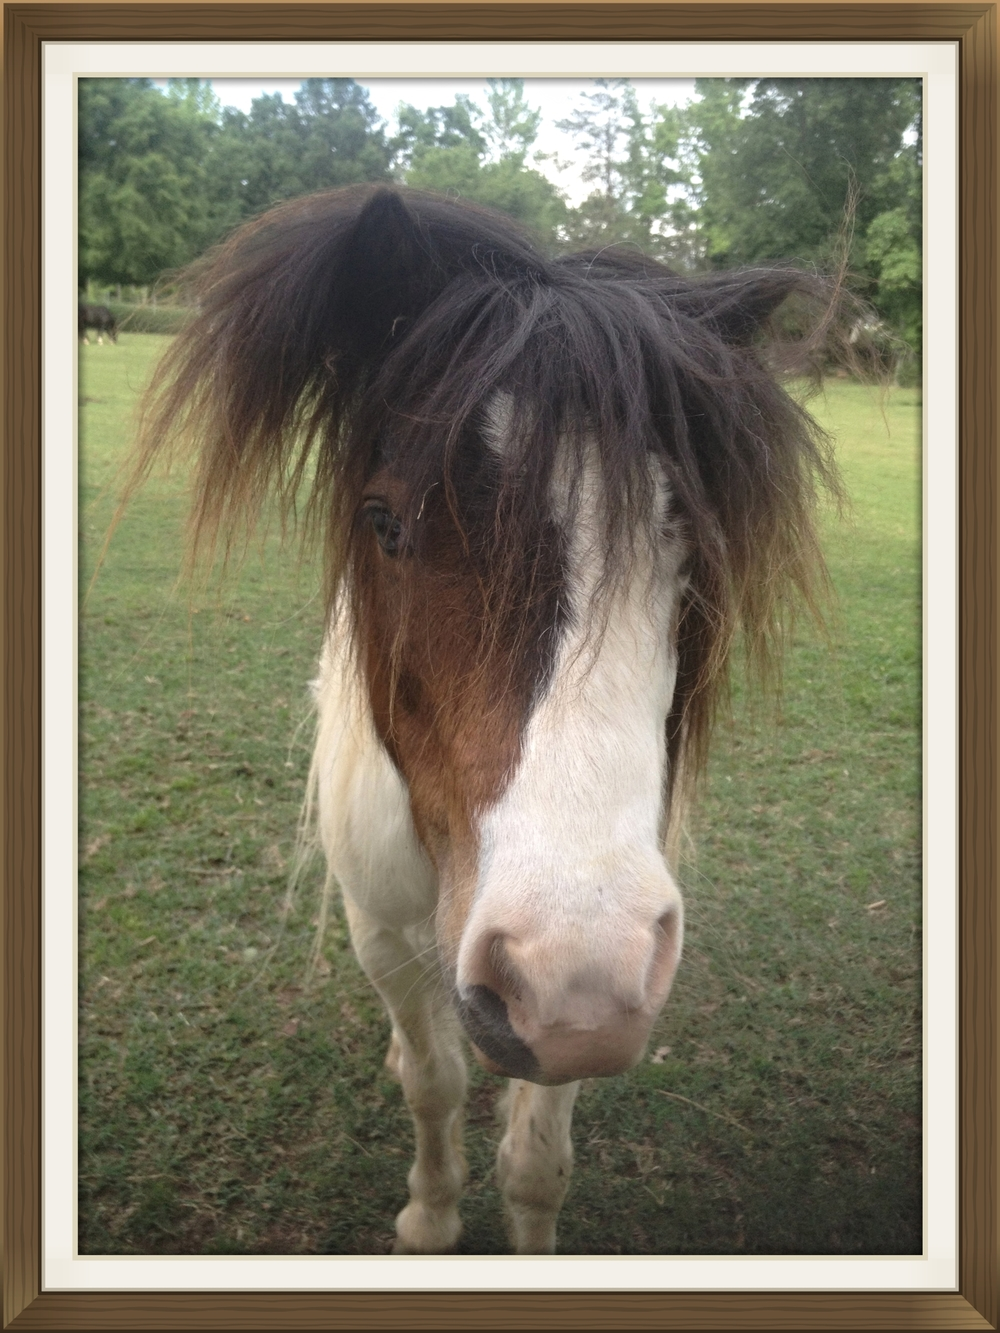 Nemo, my miniature horse who reminds me of Pig Pen.